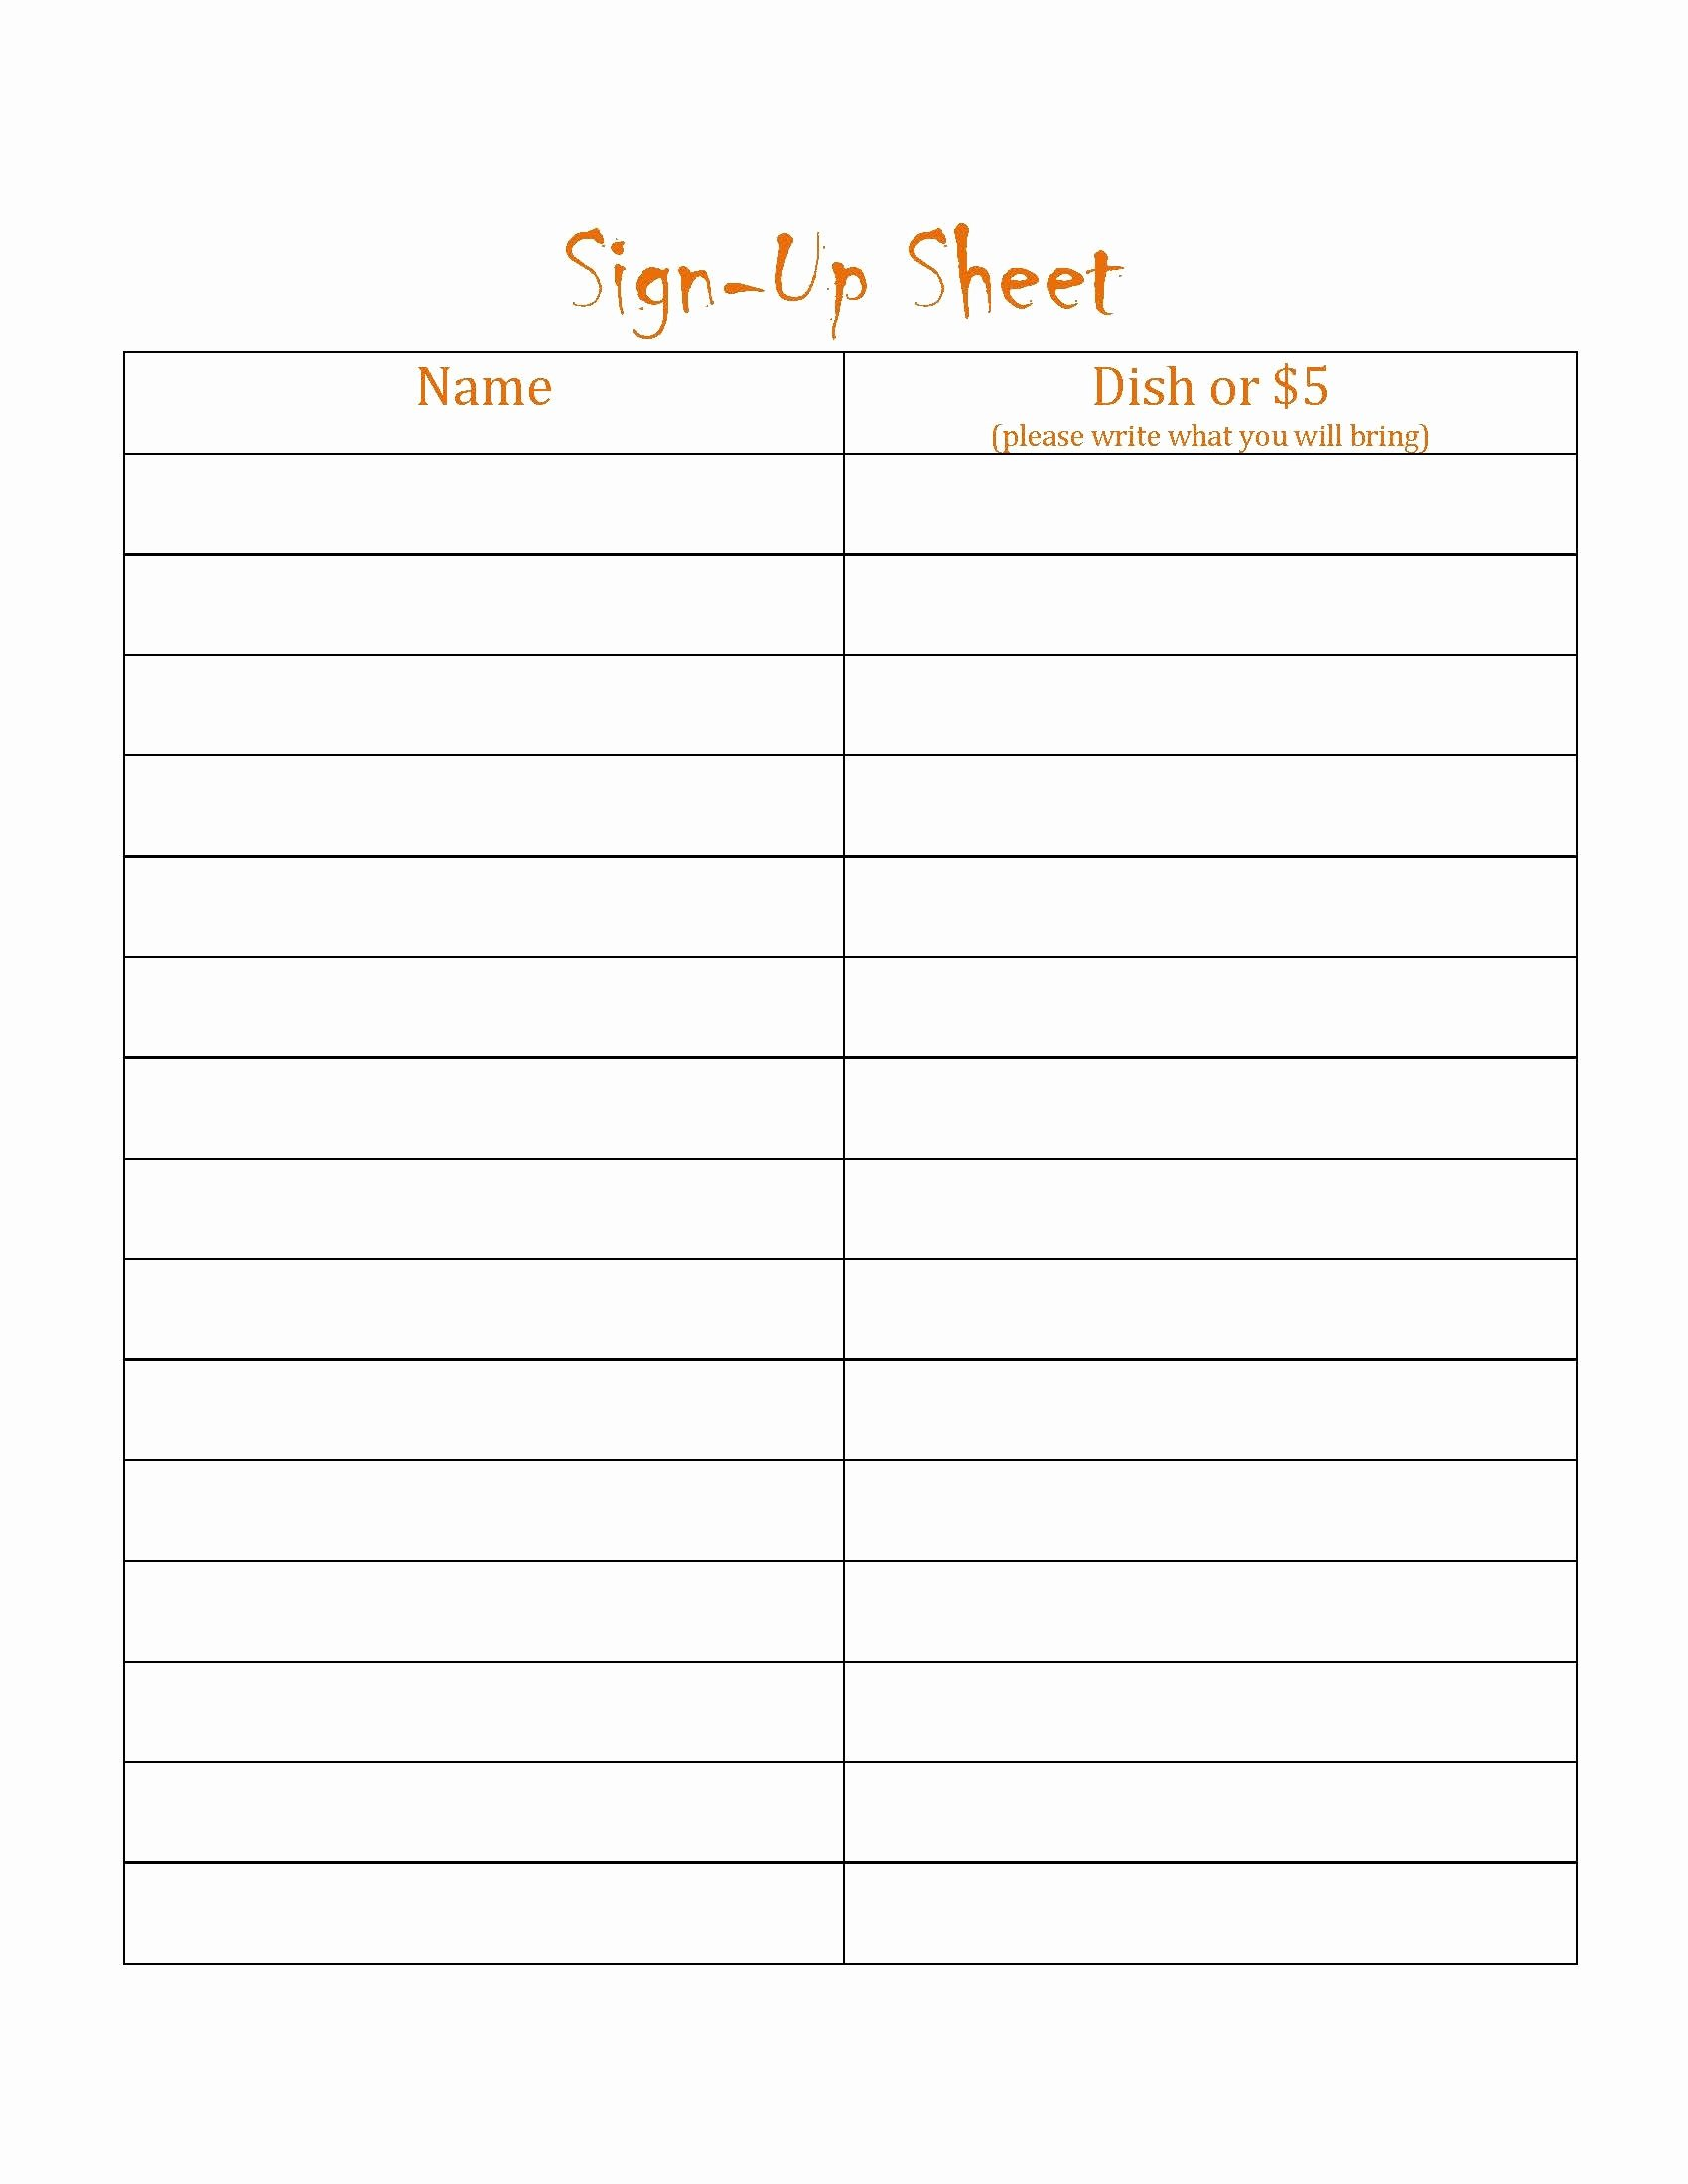 Sign Up Template Free Inspirational Blanks Potluck Signs Up Sheets Free